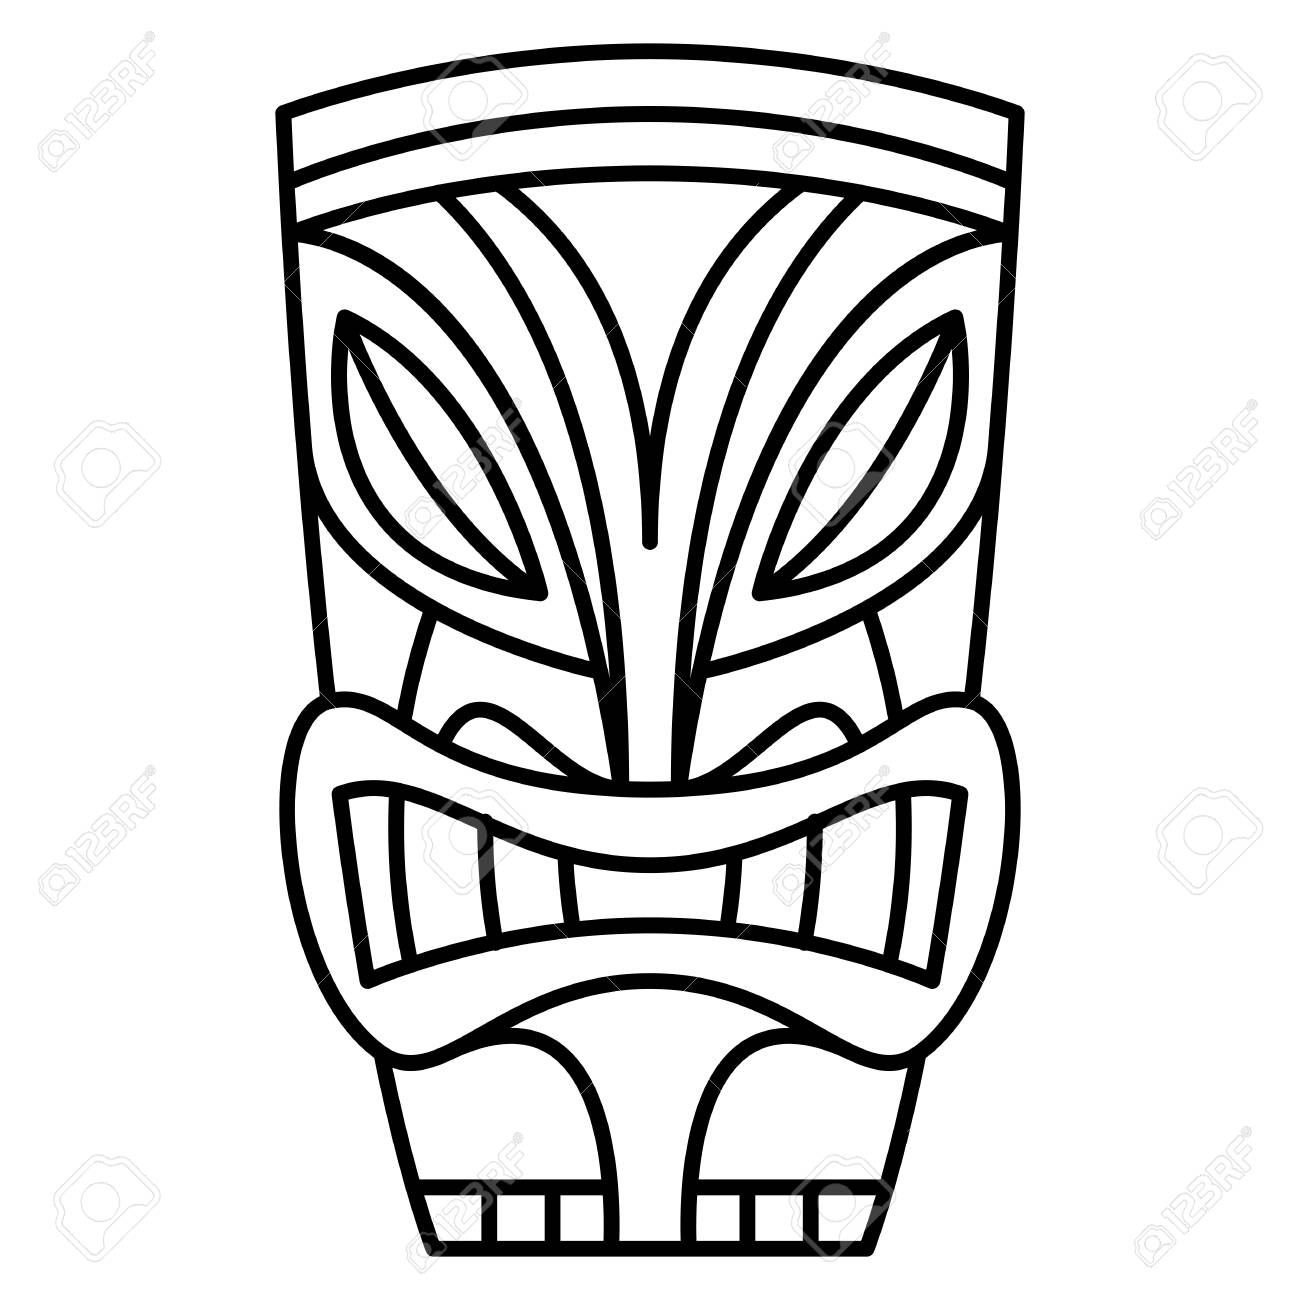 cartoon tiki idol illustration royalty free cliparts vectors and rh 123rf com tiki vectoriel vector tiki mask